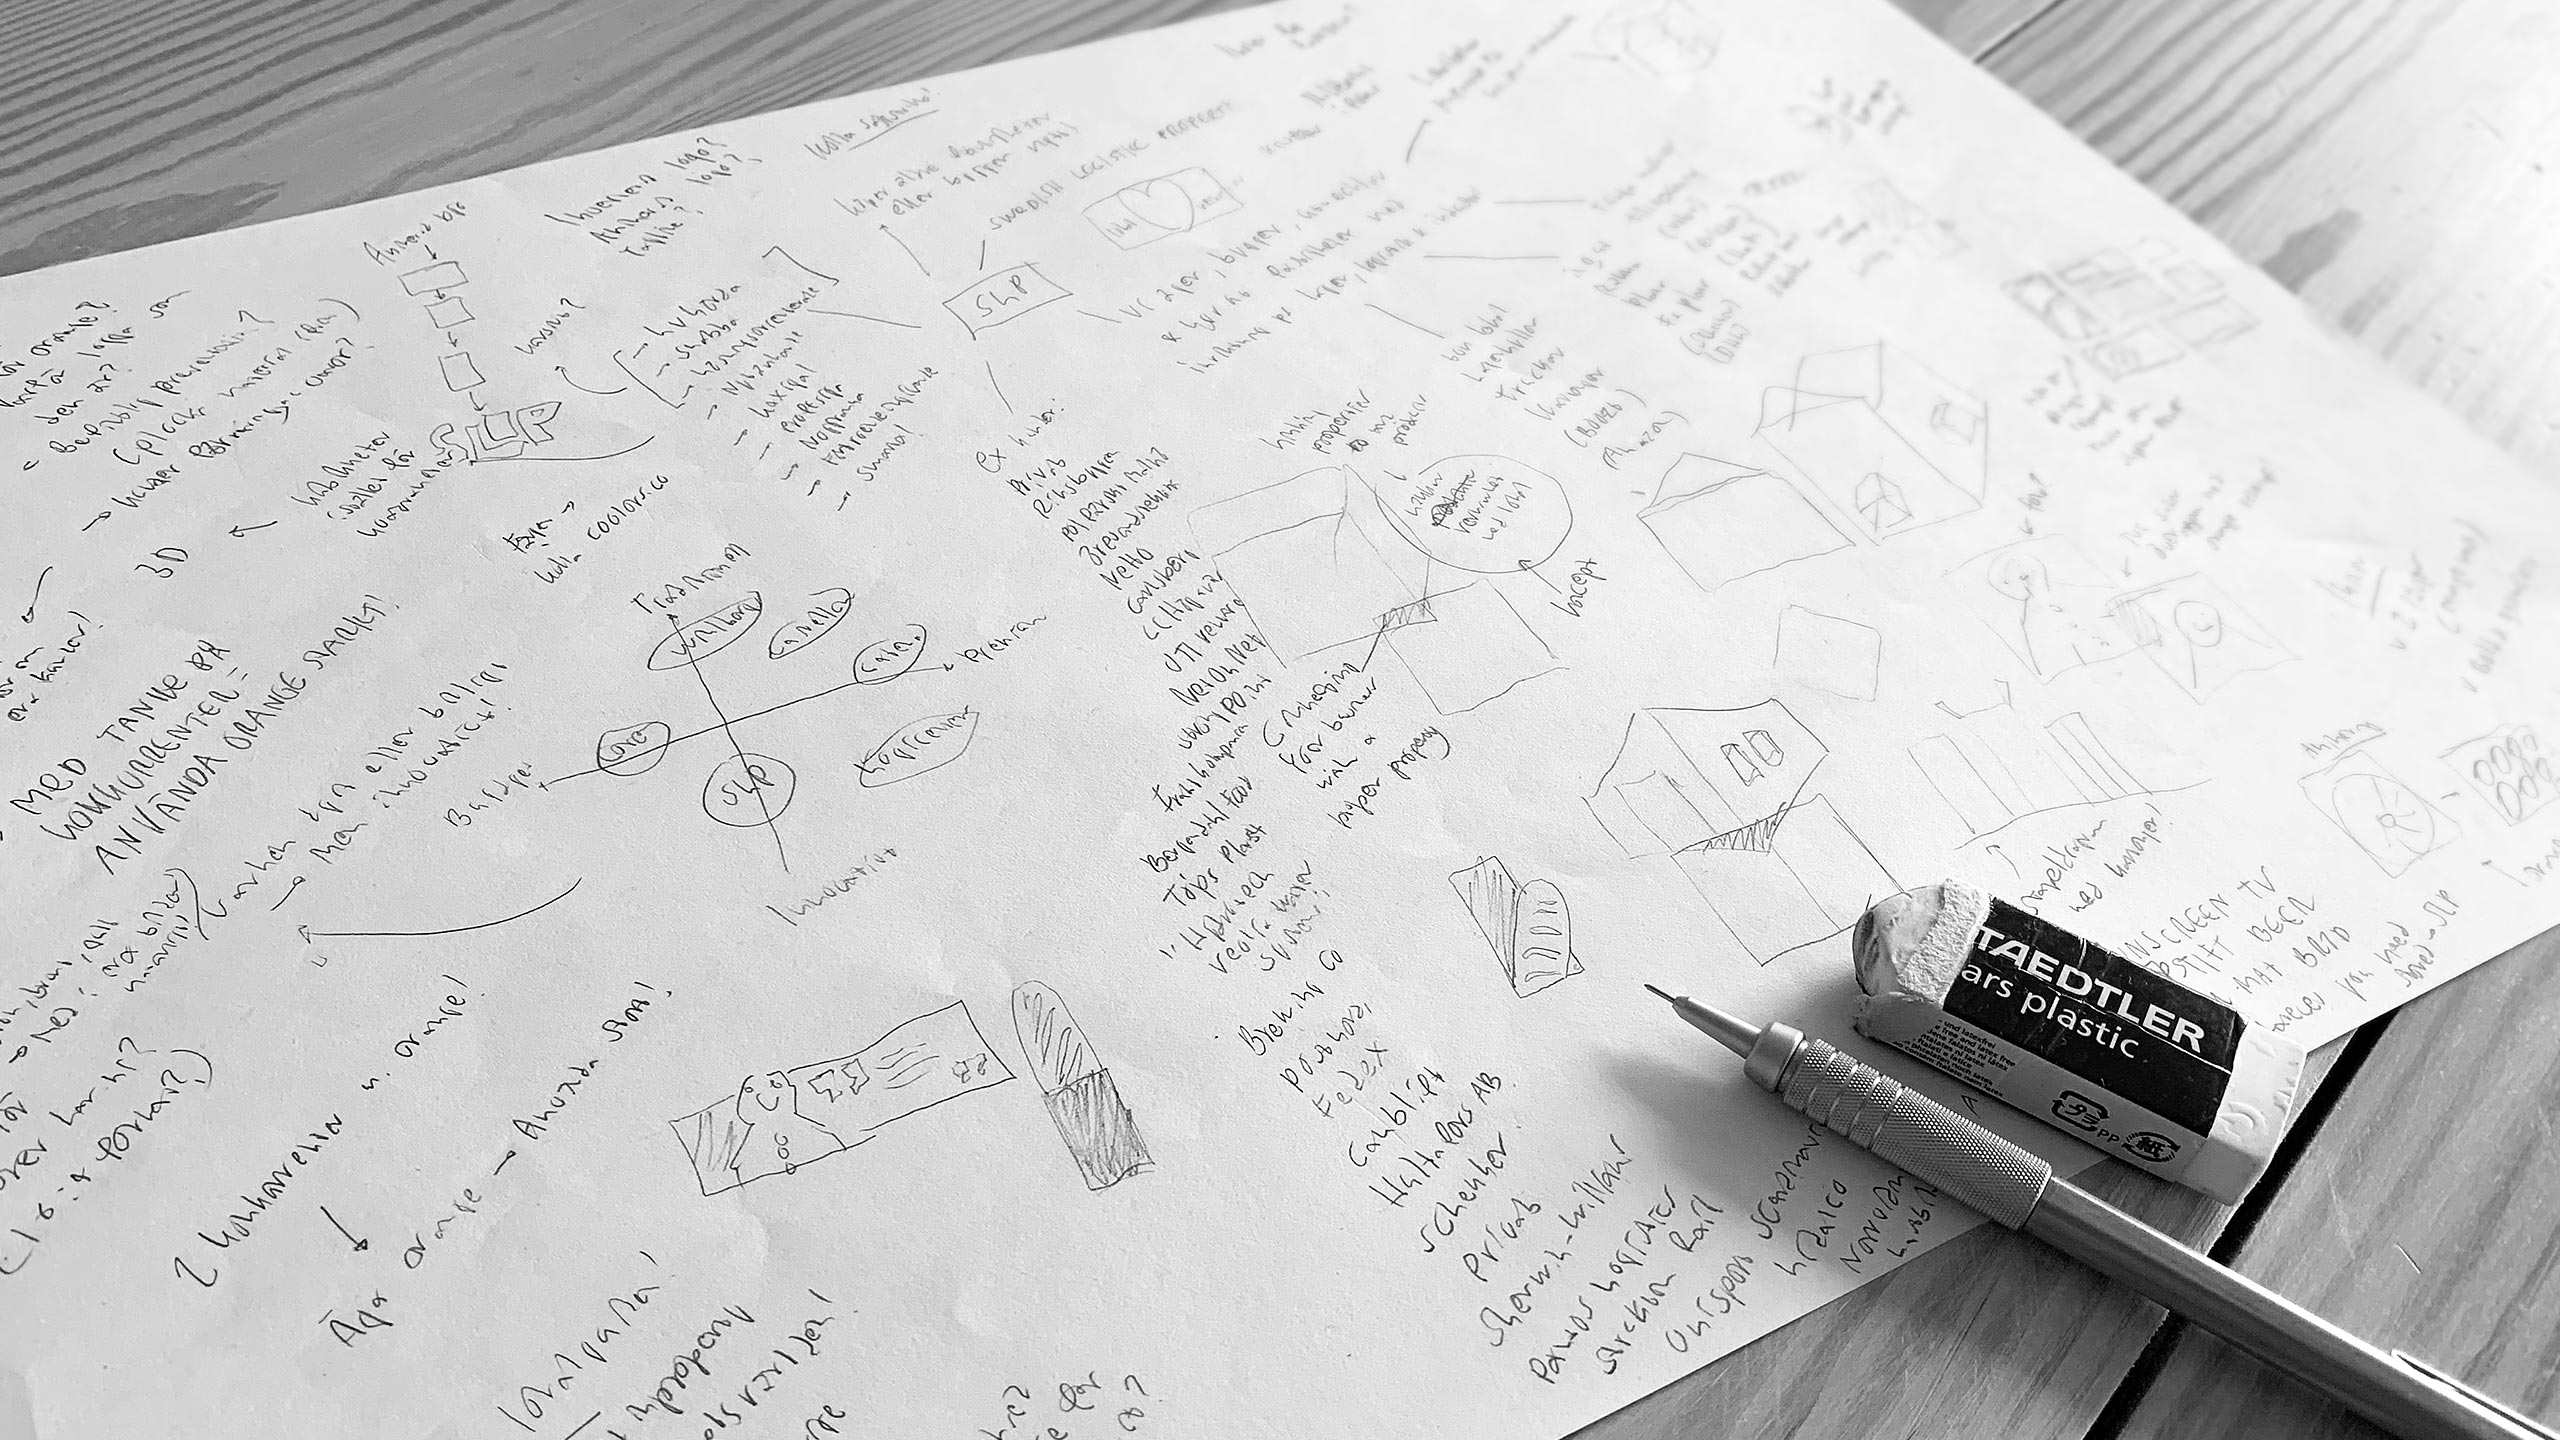 Image of brainstorming sketches.